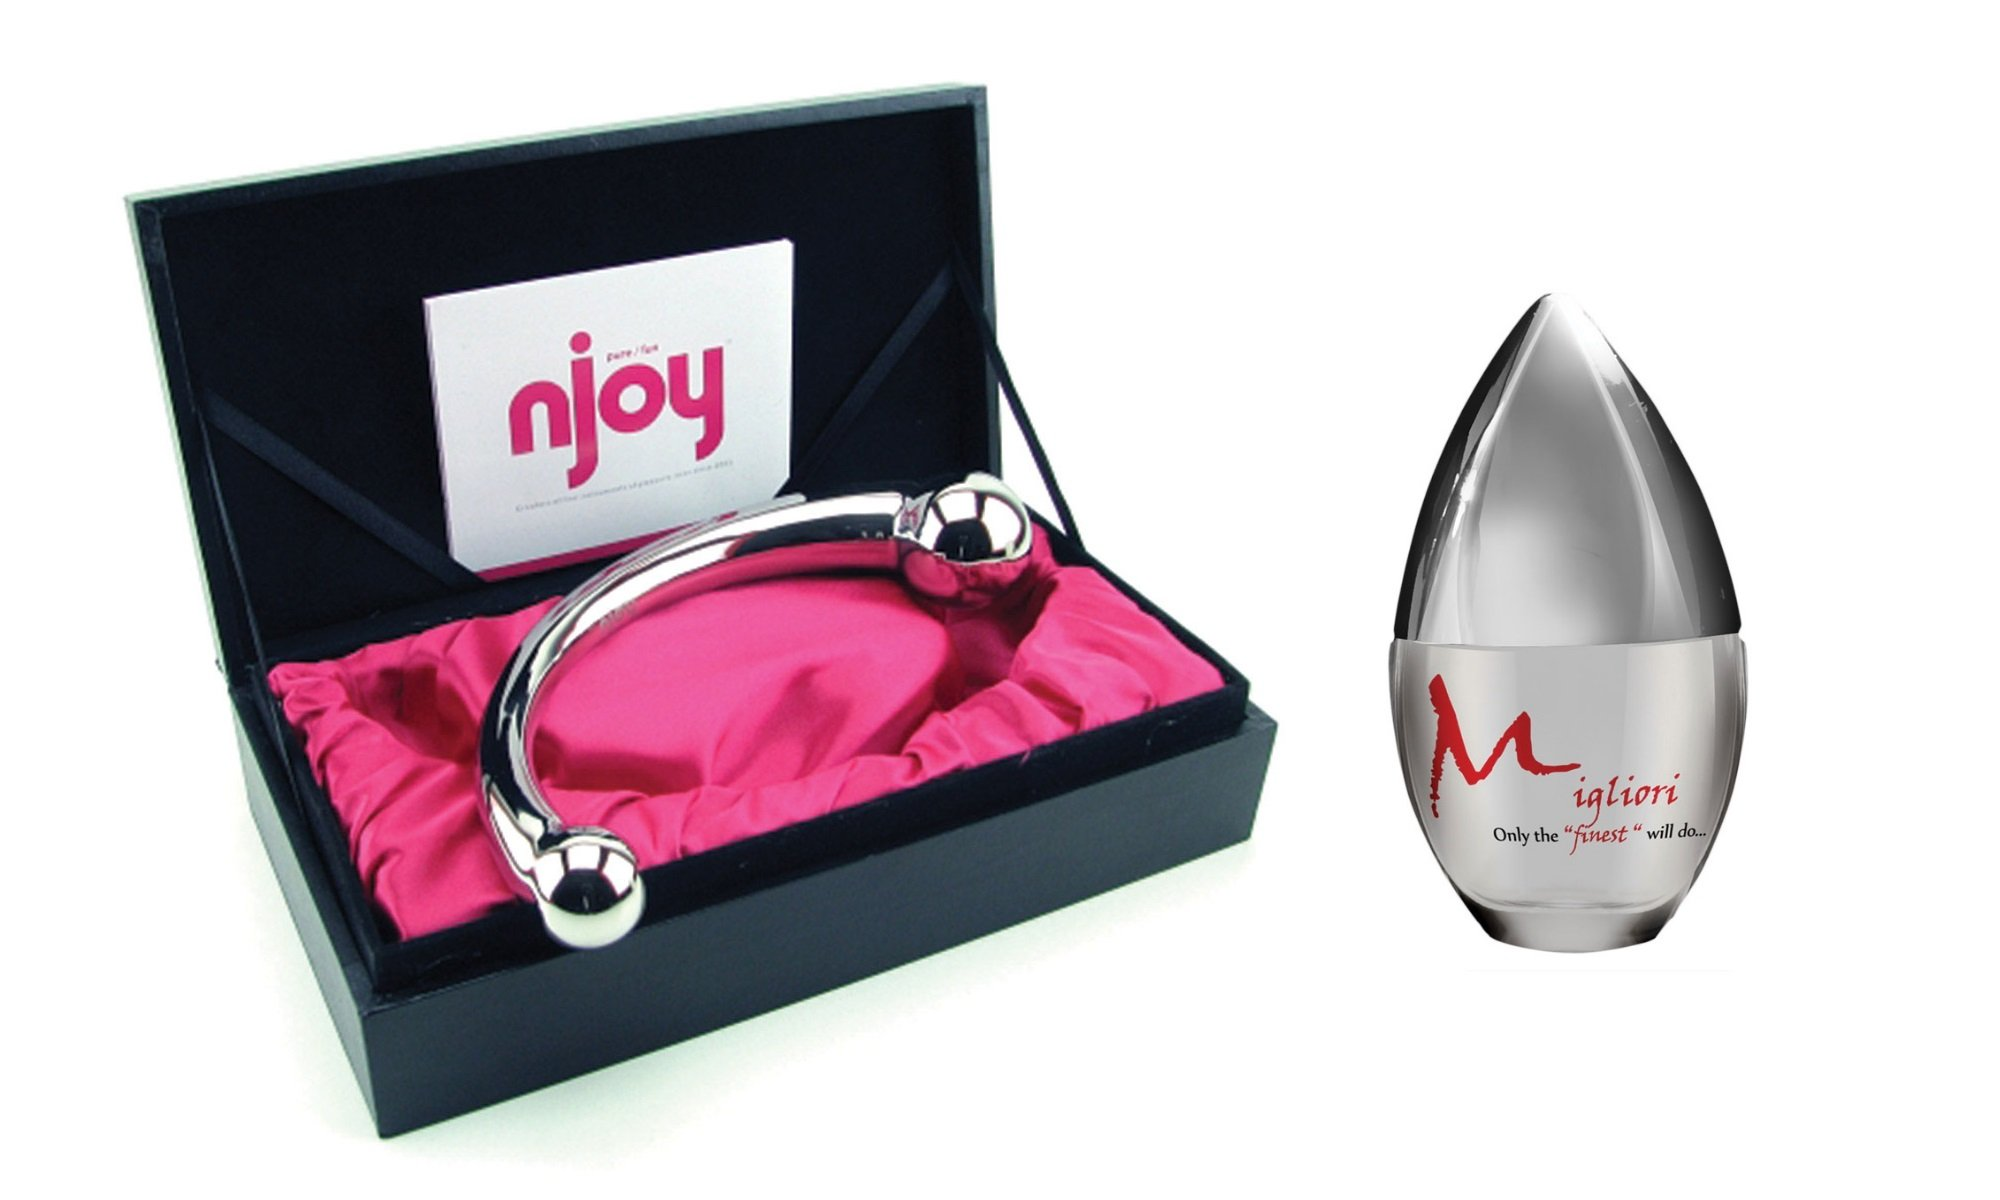 Beautiful high end Njoy Pure Wand paired with Migliori premium silicone-based lubricant (30 ml) by Njoy, Migliori